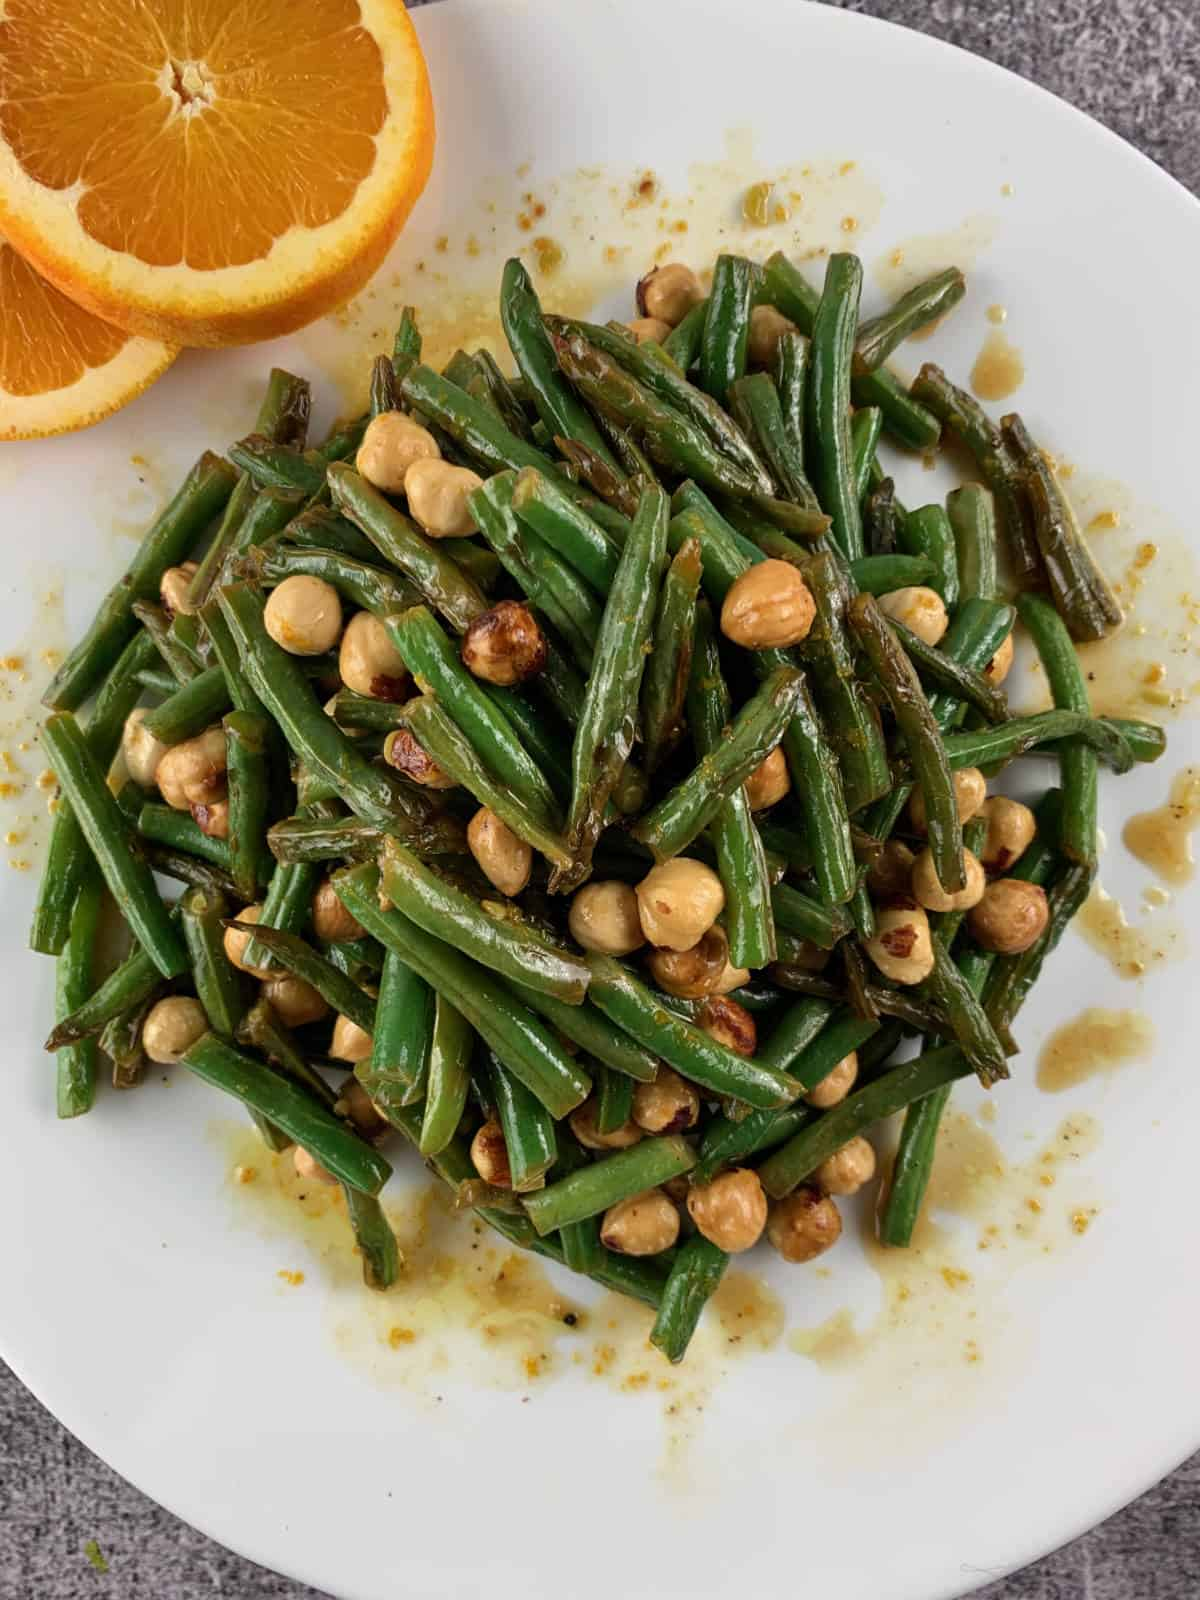 GREEN BEAN SALAD WITH ORANGE AND HAZELNUTS IN A WHITE PLATTER WITH ORANGE SLICES ON THE SIDE